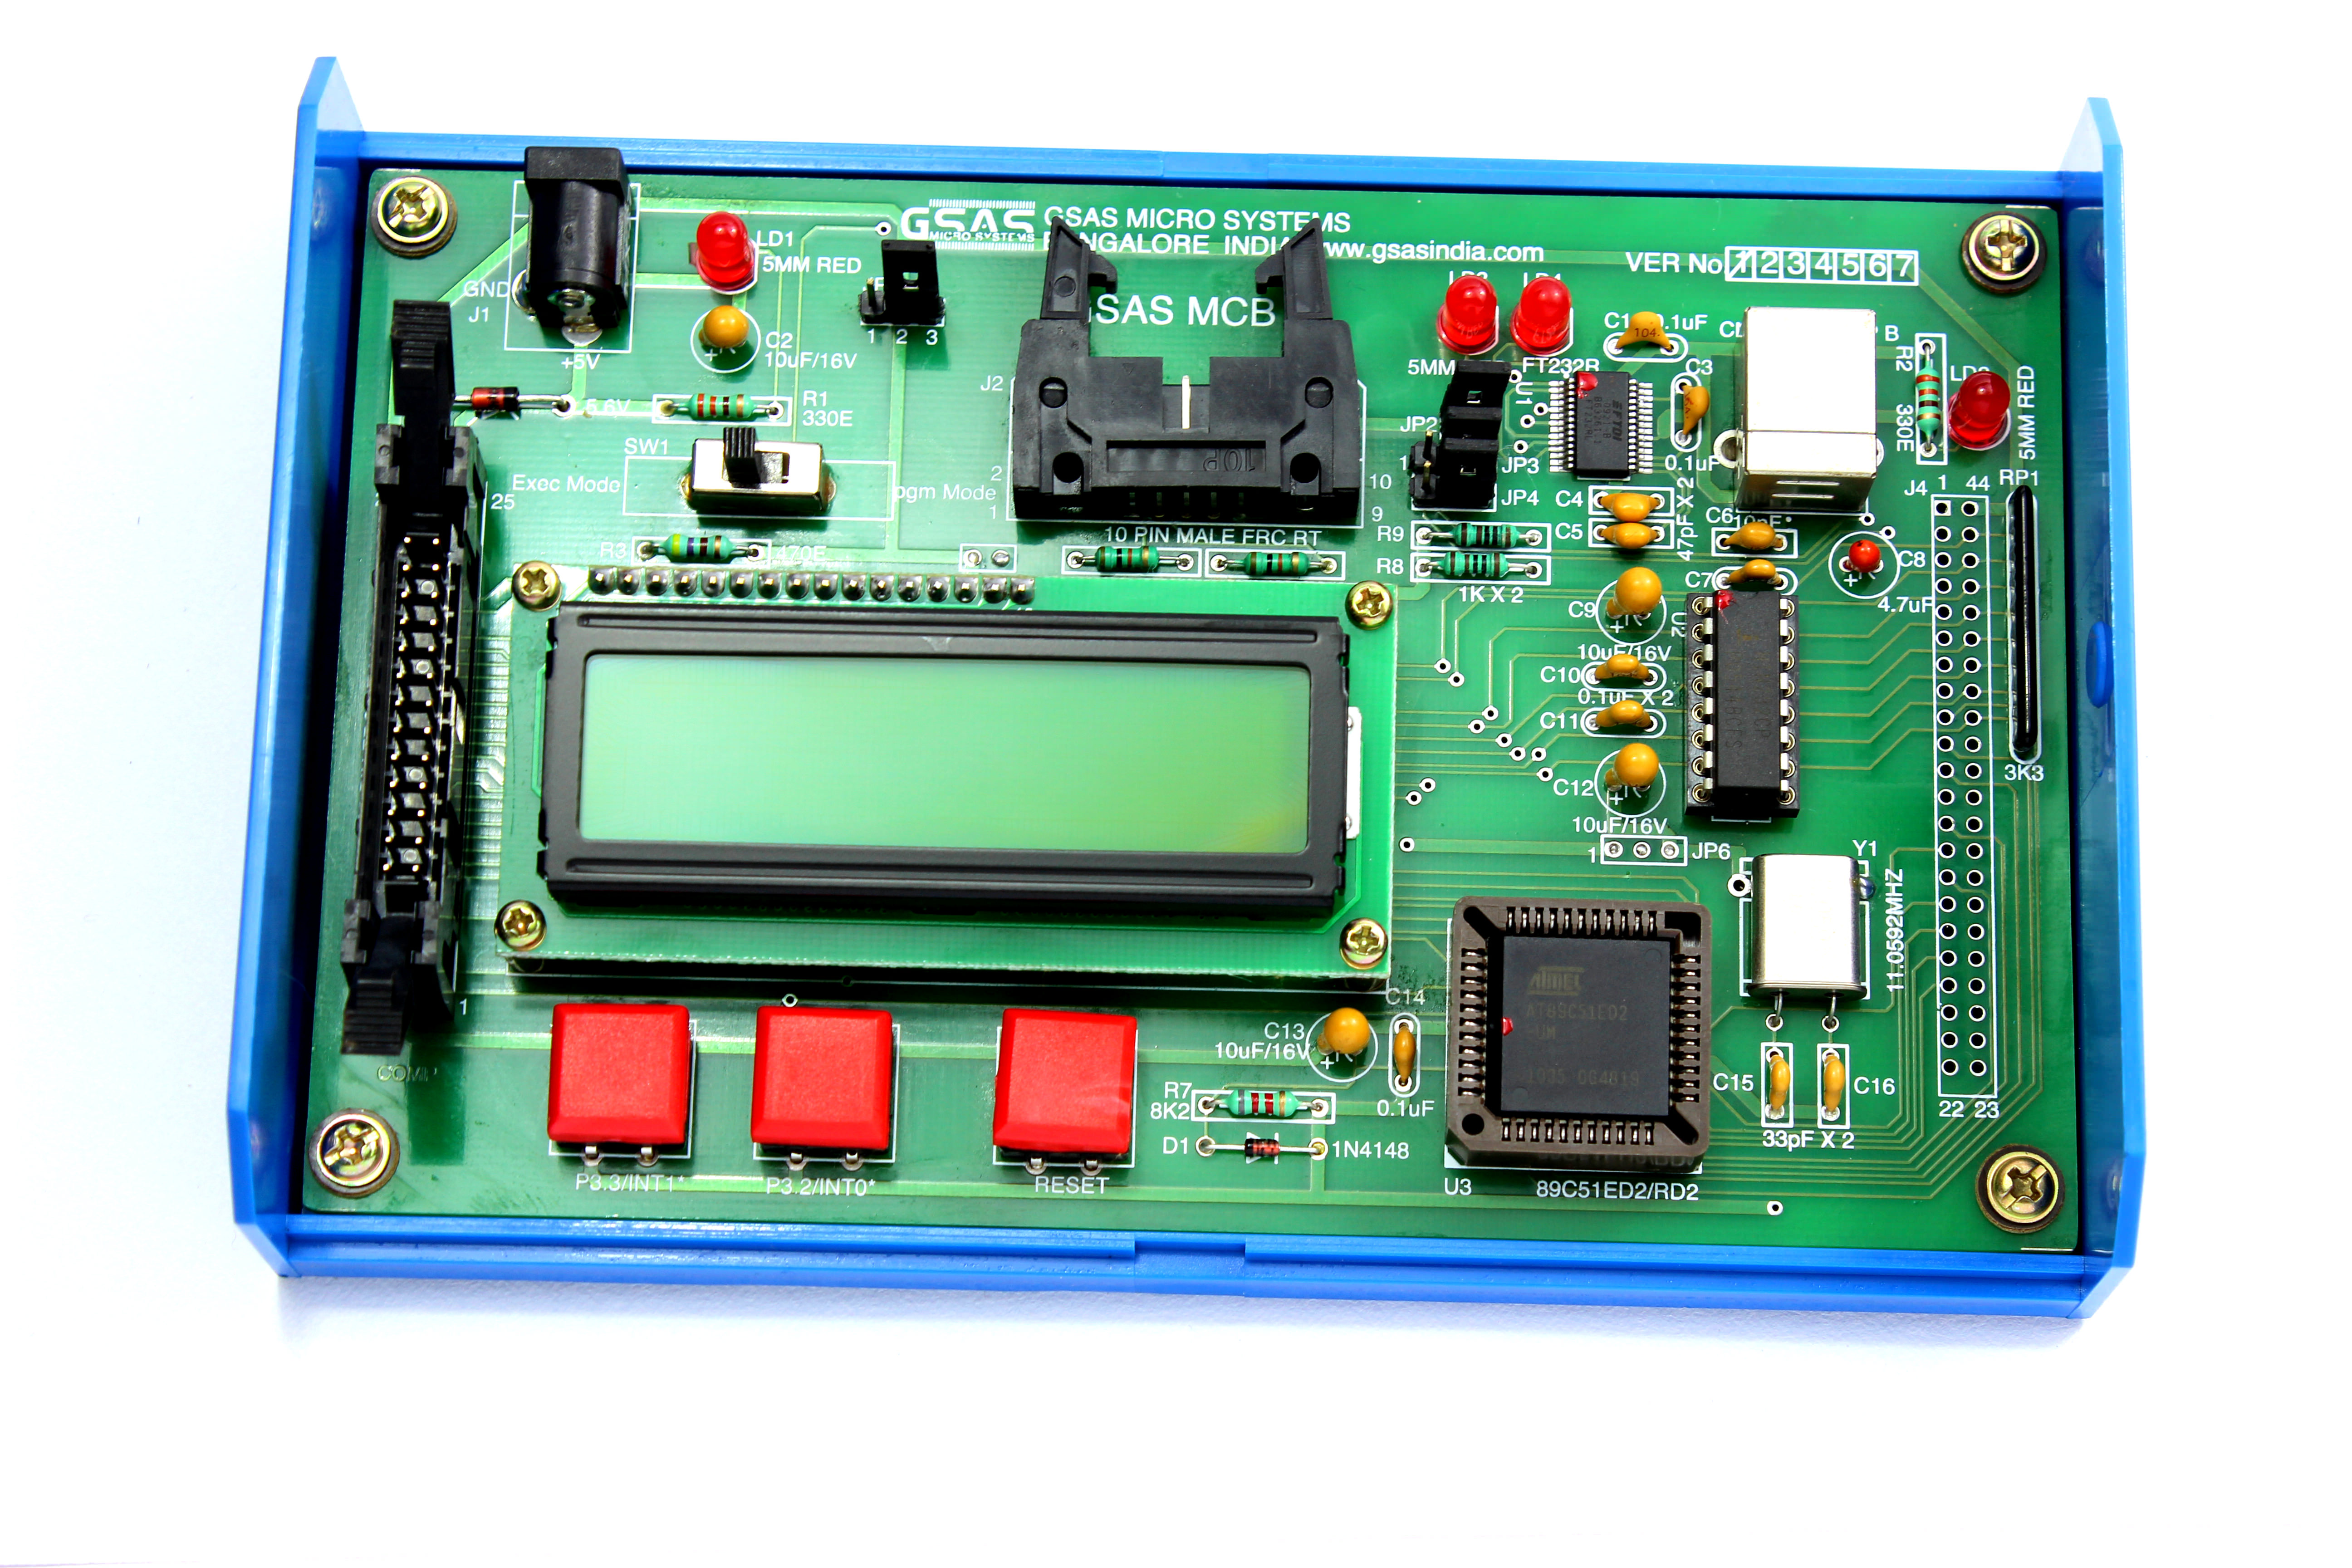 Gsas Mcb 51 Micro Systems Circuit The Simulation Consist Of A Microcontroller Chip Pic Mcb51